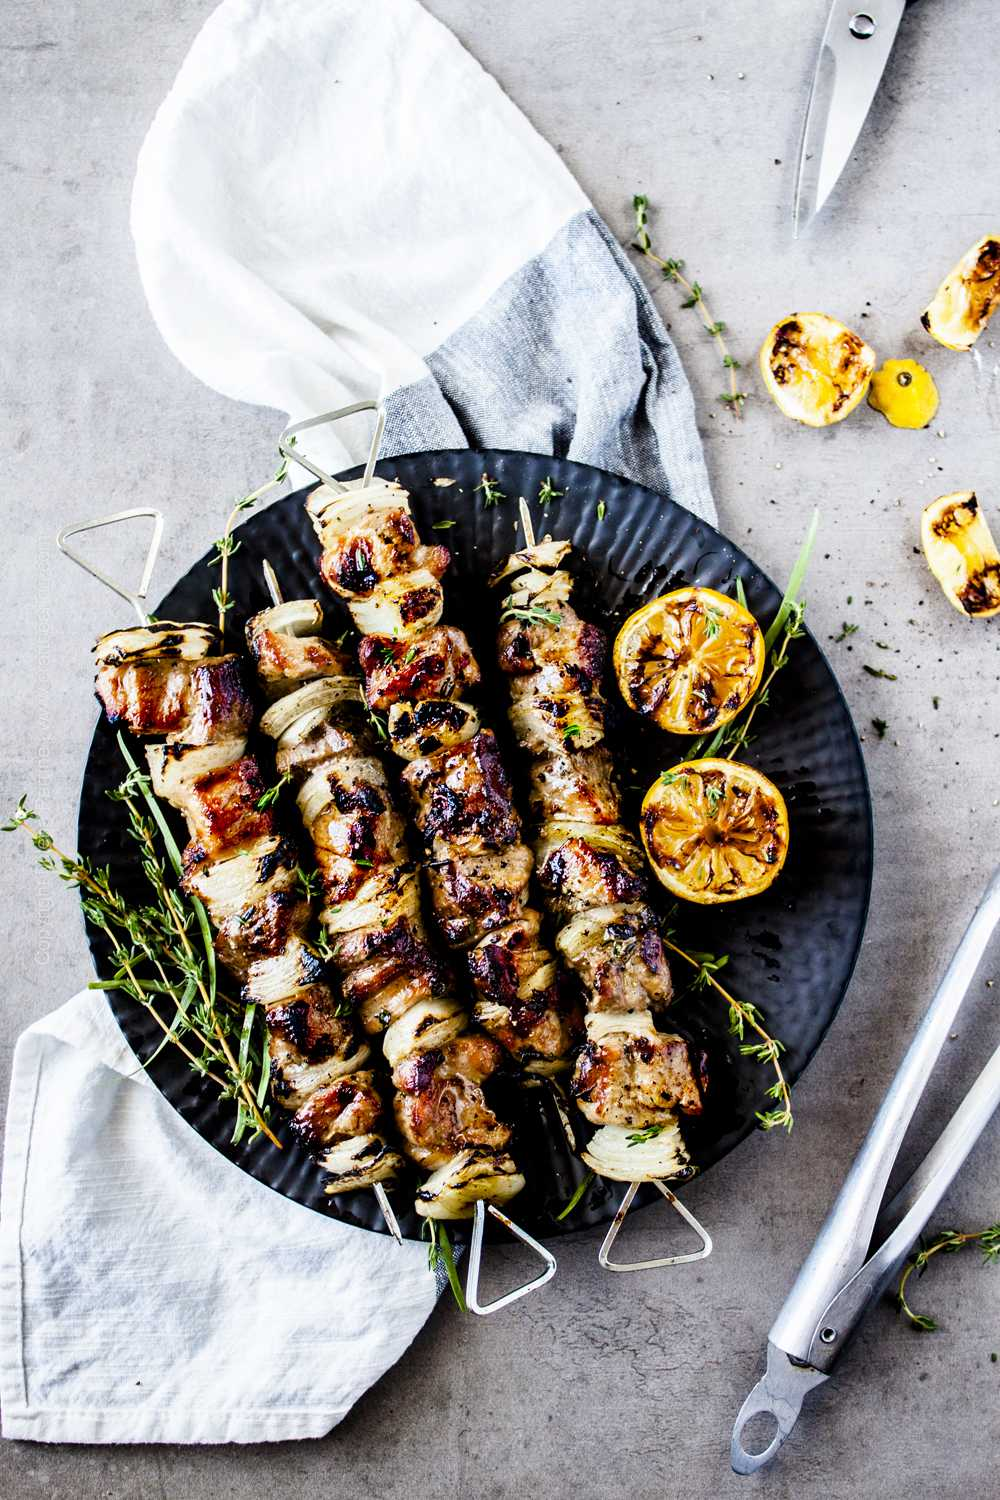 Pork skewers plated with fresh herbs and charred lemon halves.